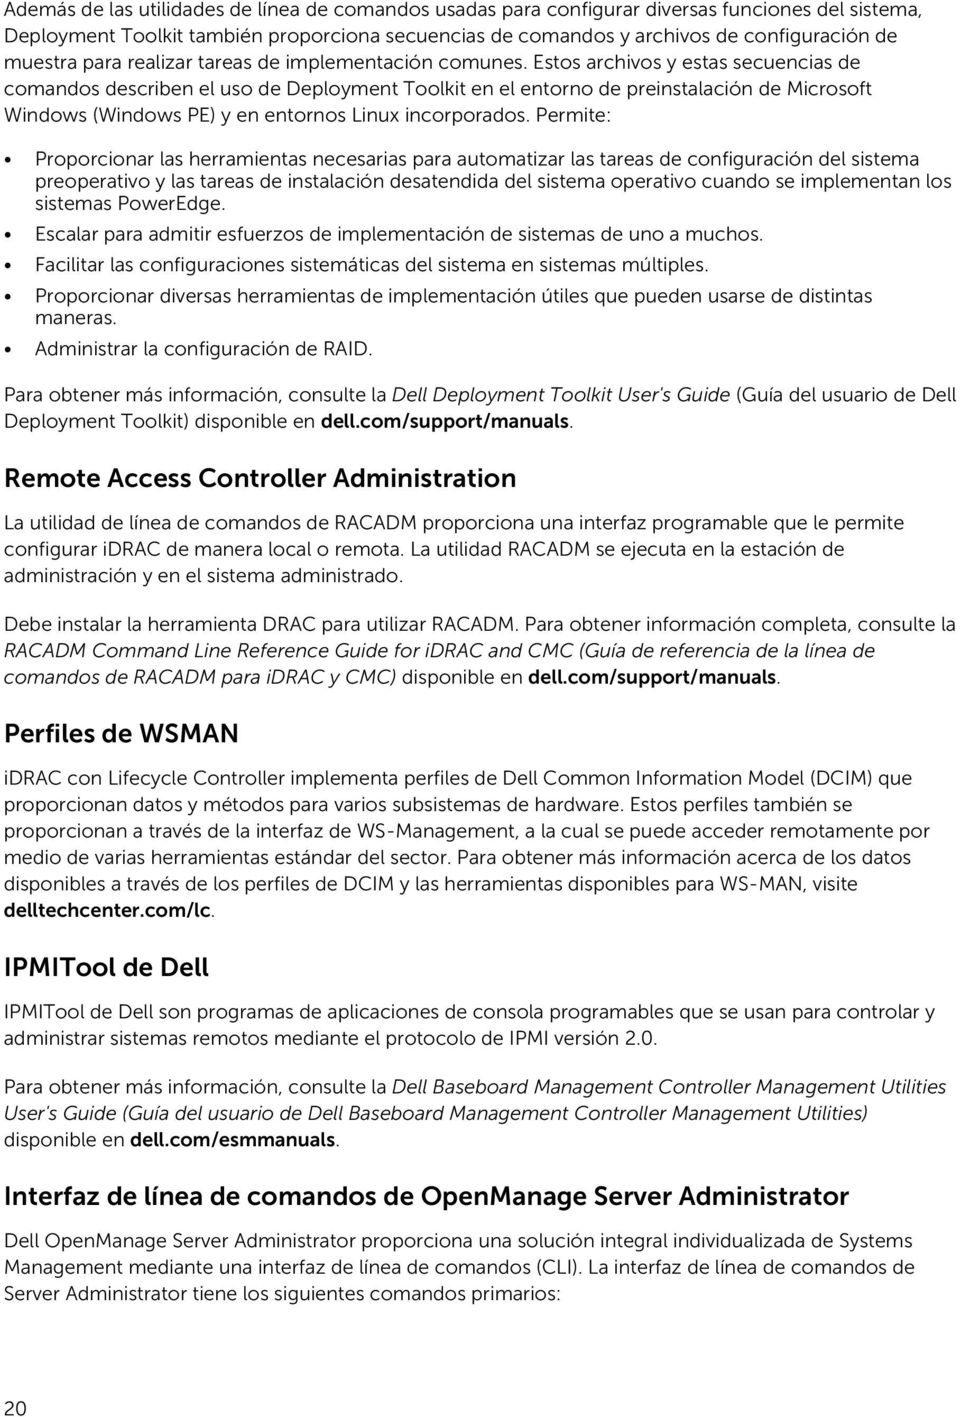 Guía de descripción general de Dell OpenManage Systems